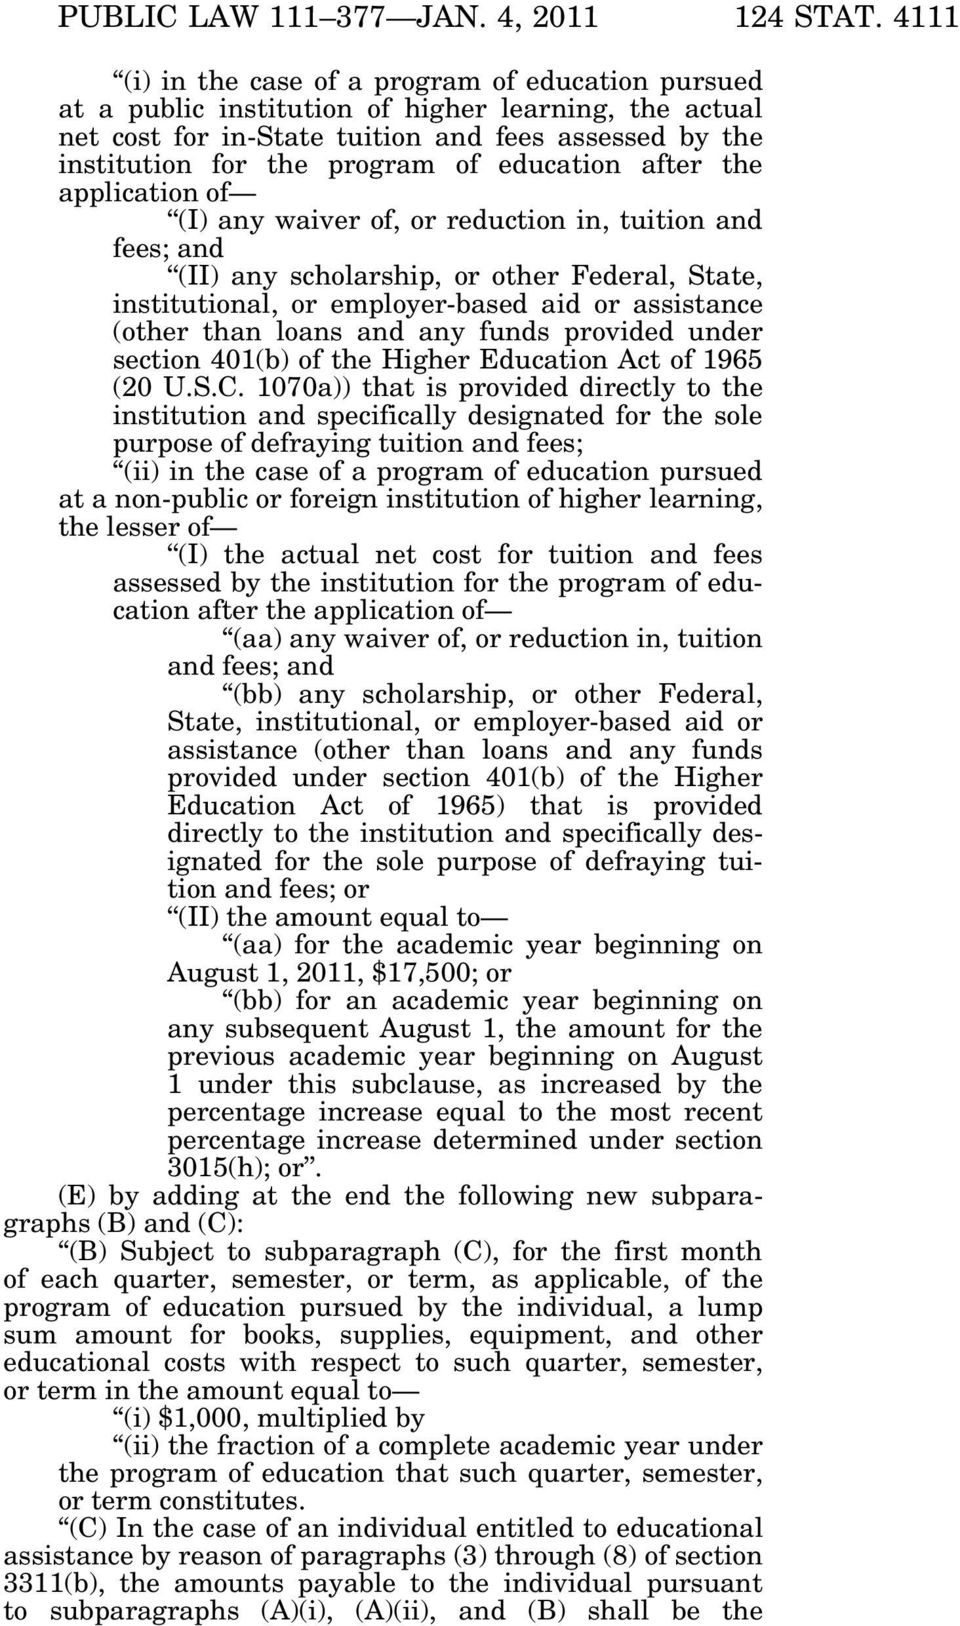 education after the application of (I) any waiver of, or reduction in, tuition and fees; and (II) any scholarship, or other Federal, State, institutional, or employer-based aid or assistance (other